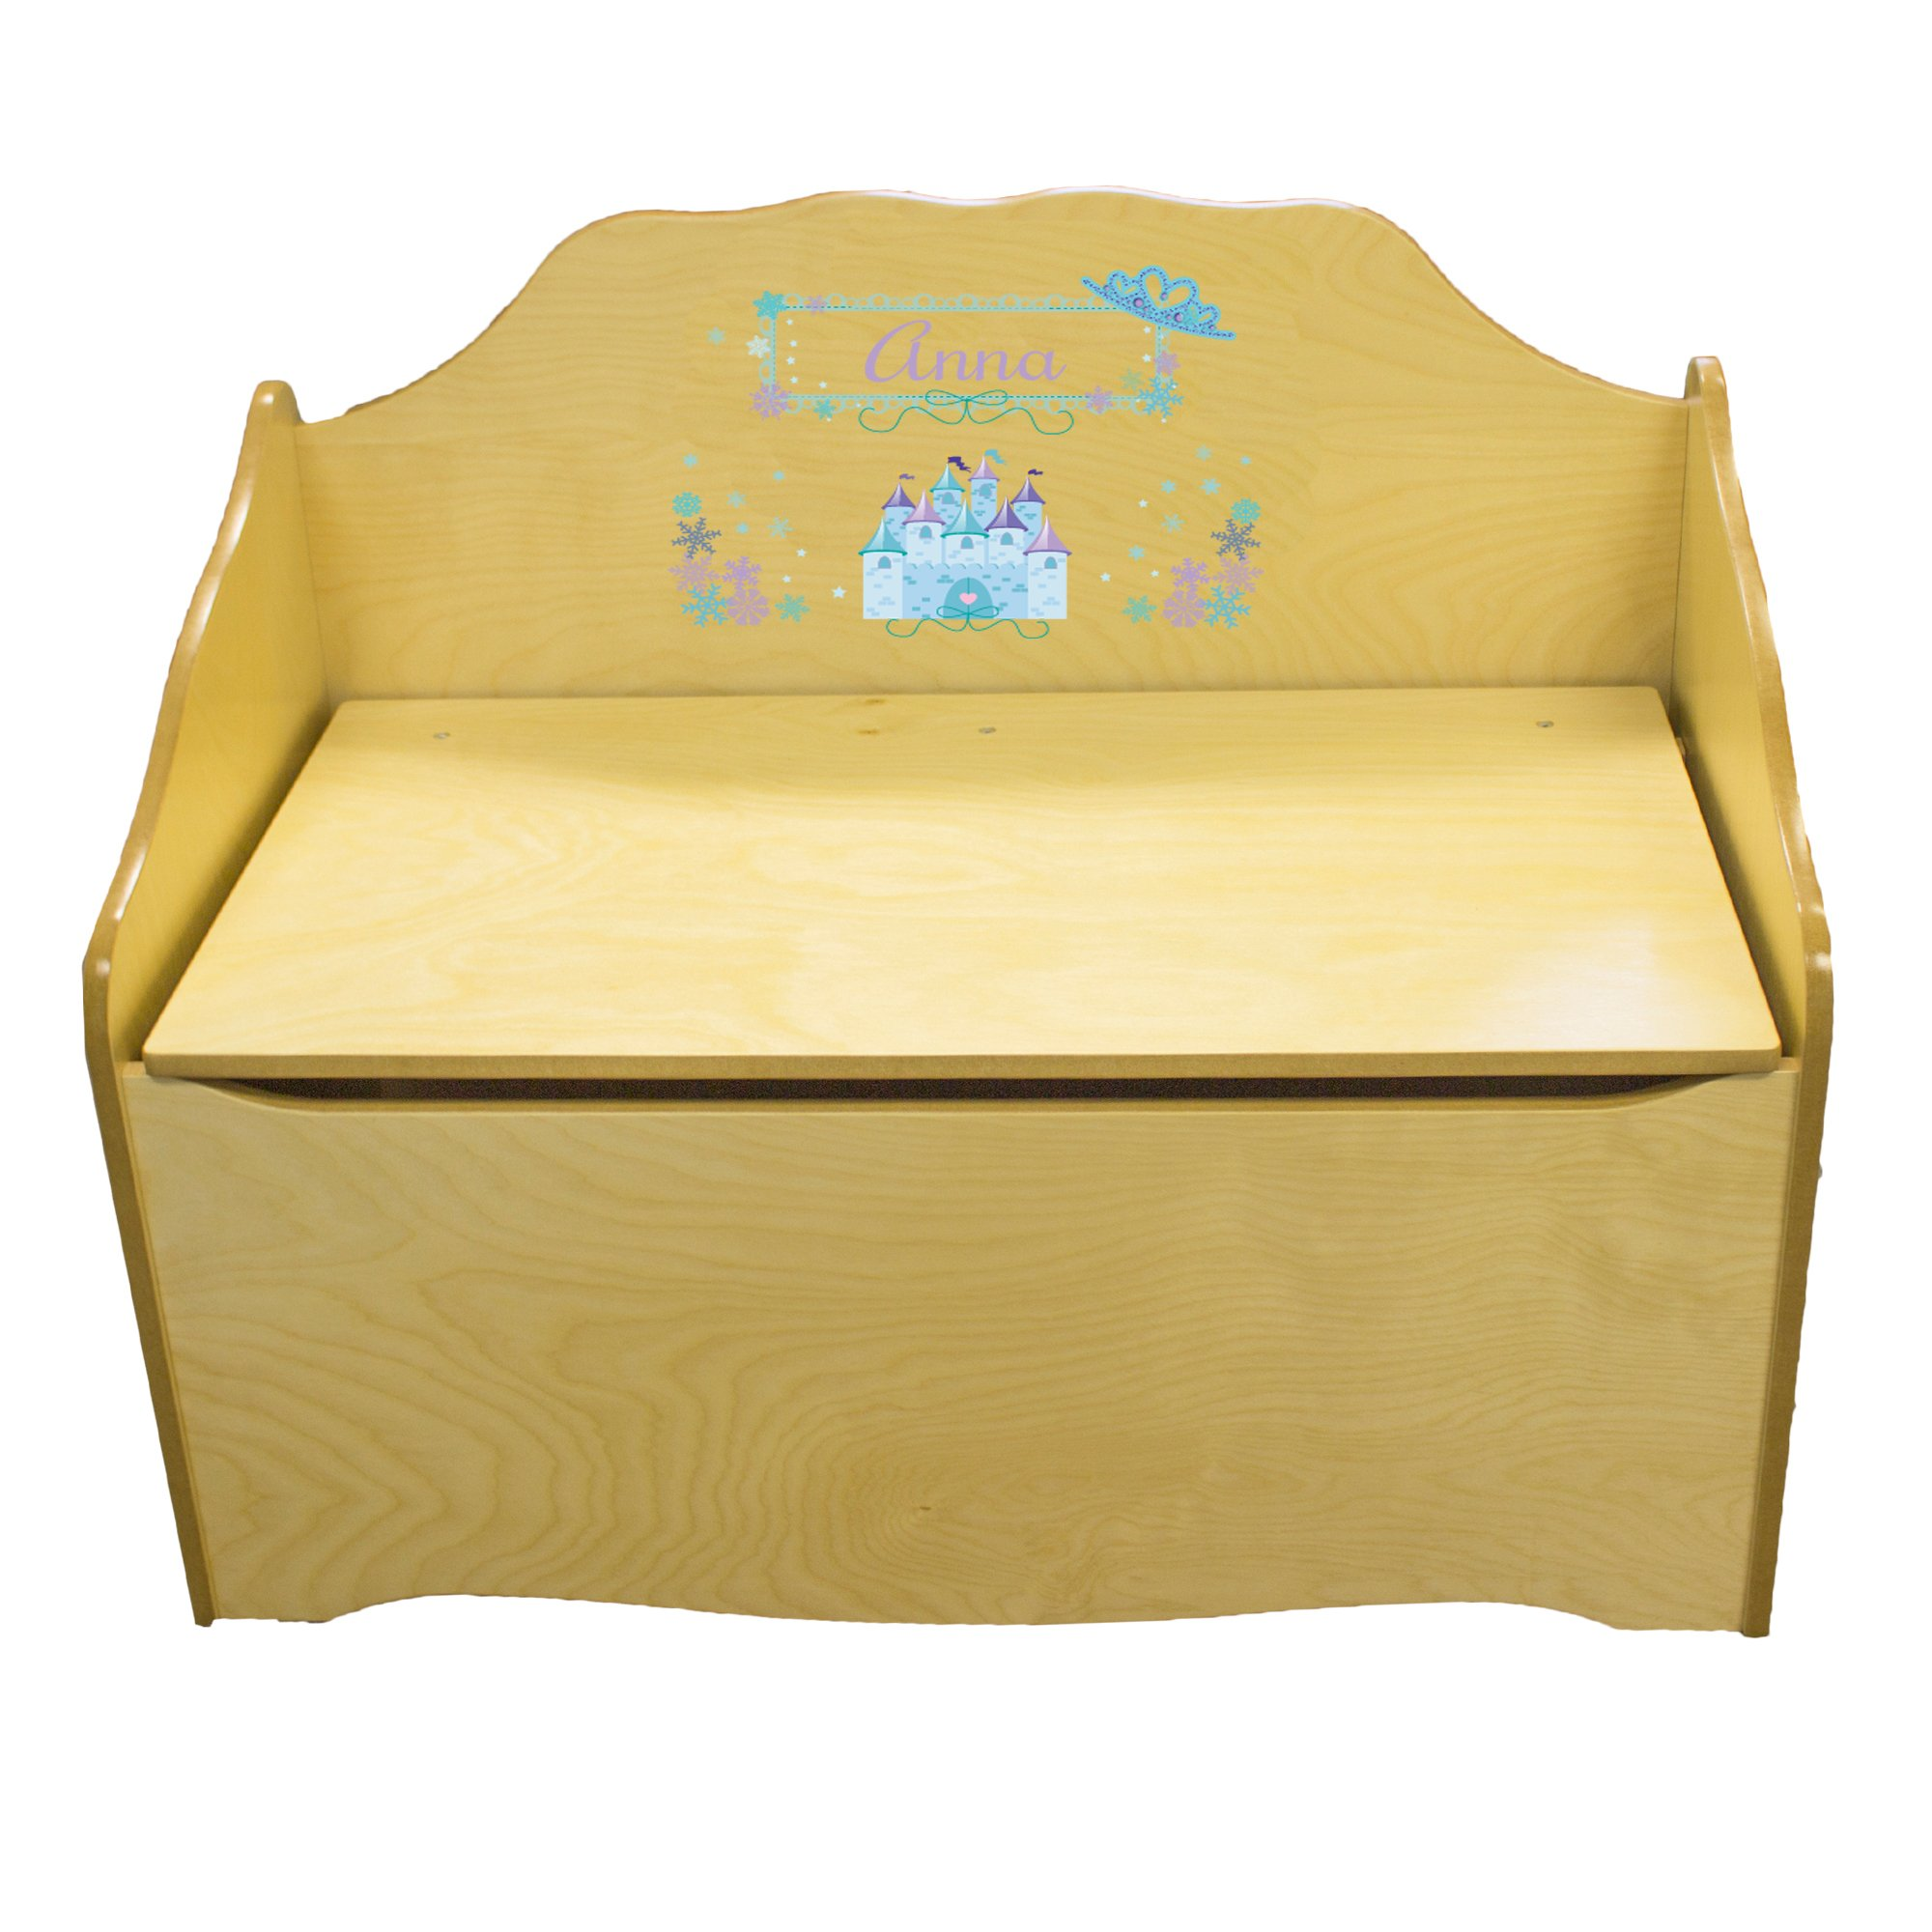 Personalized Ice Princess Childrens Natural Wooden Toy Chest